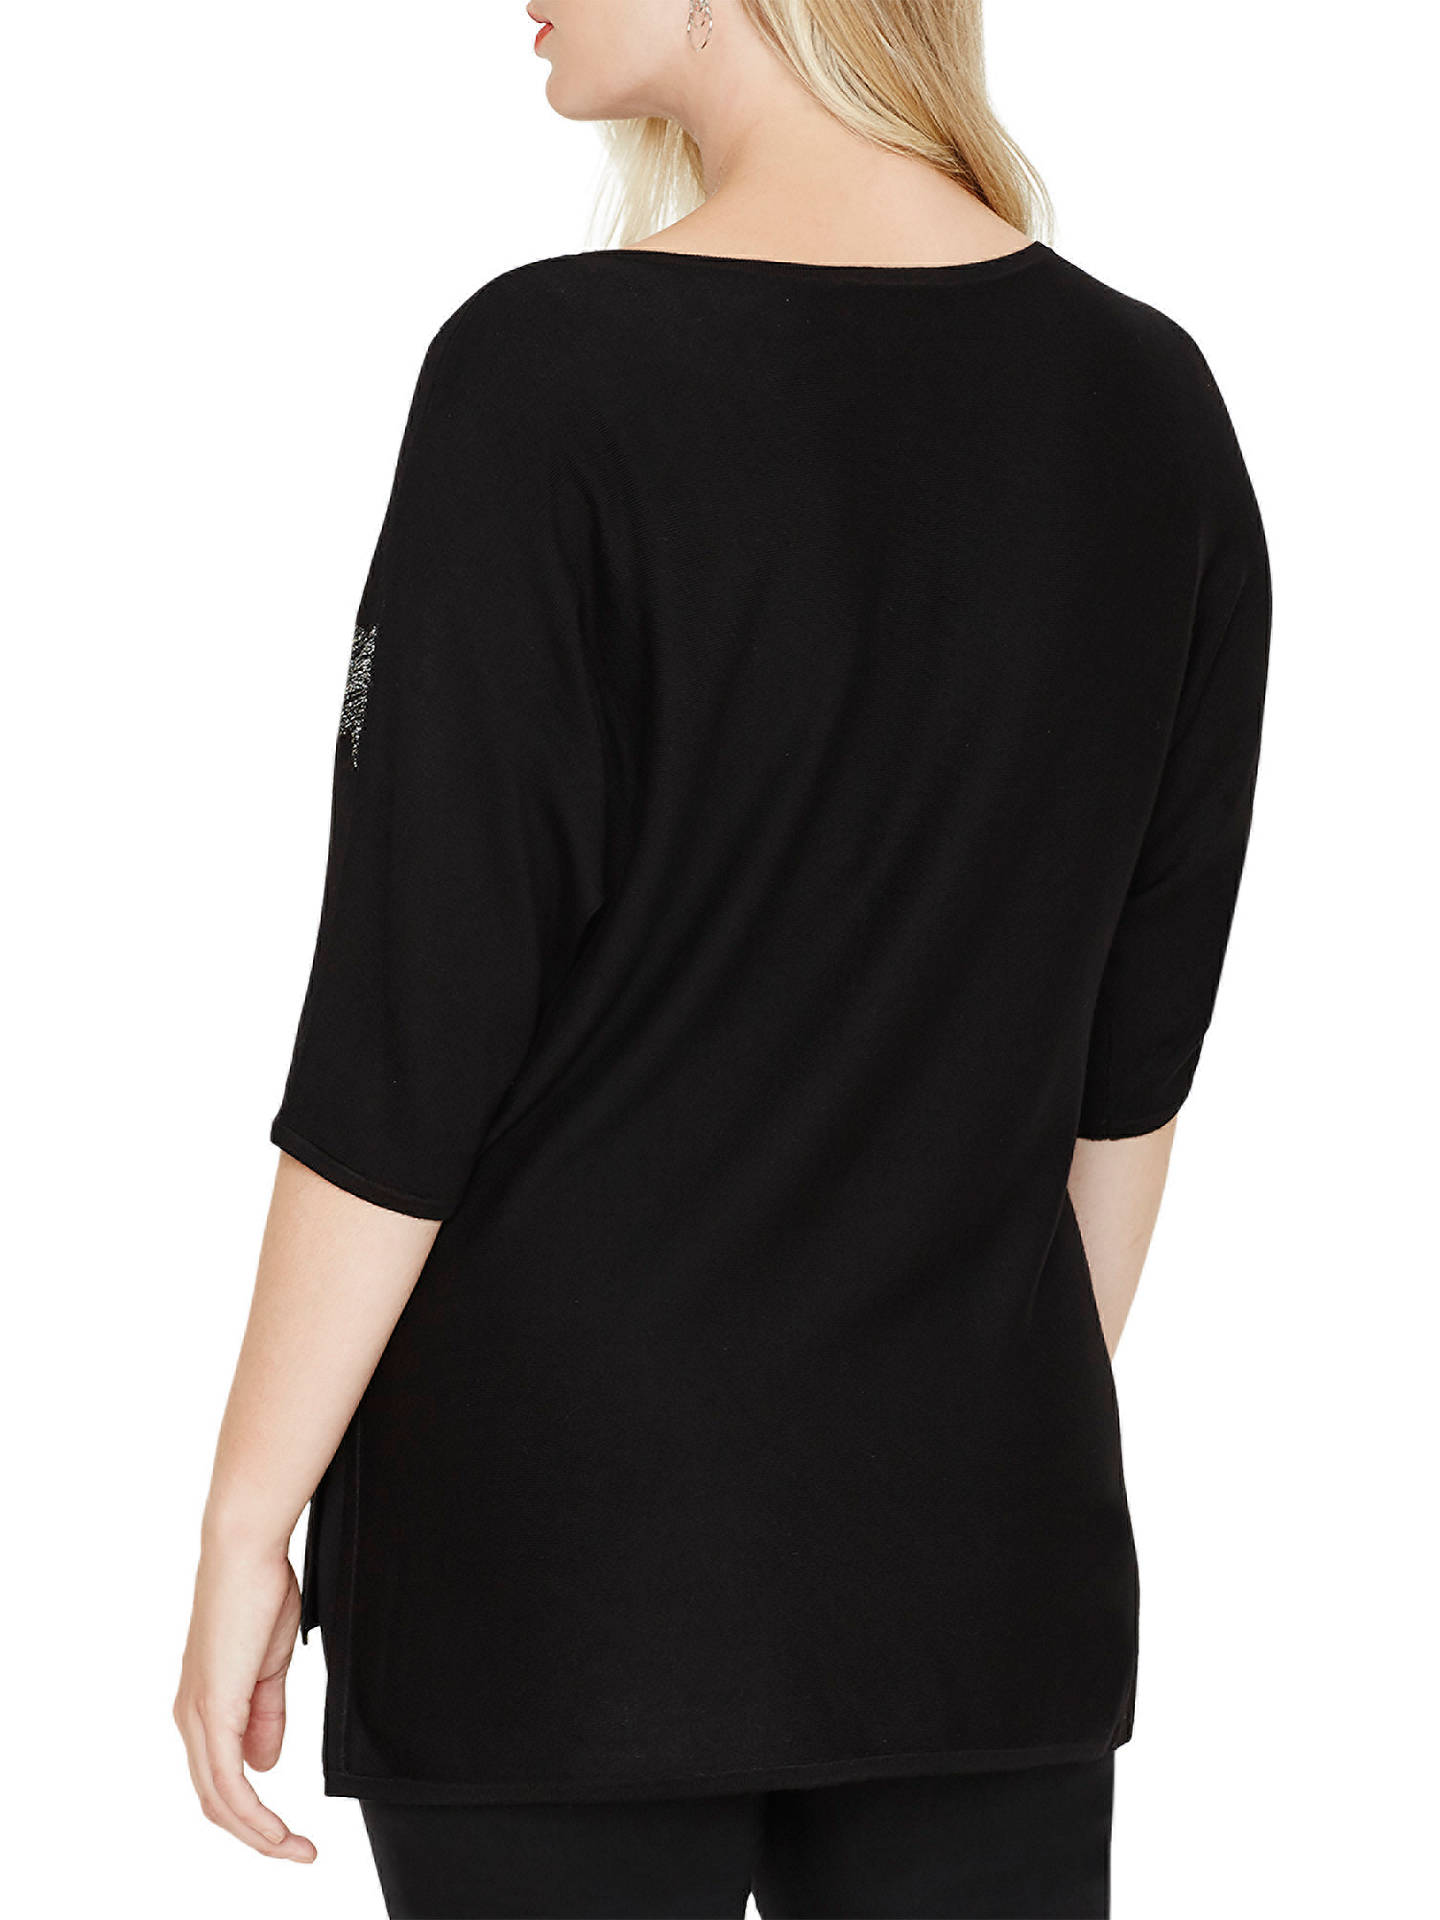 Buy Studio 8 Bexley Star Jumper, Black/Silver, 14 Online at johnlewis.com